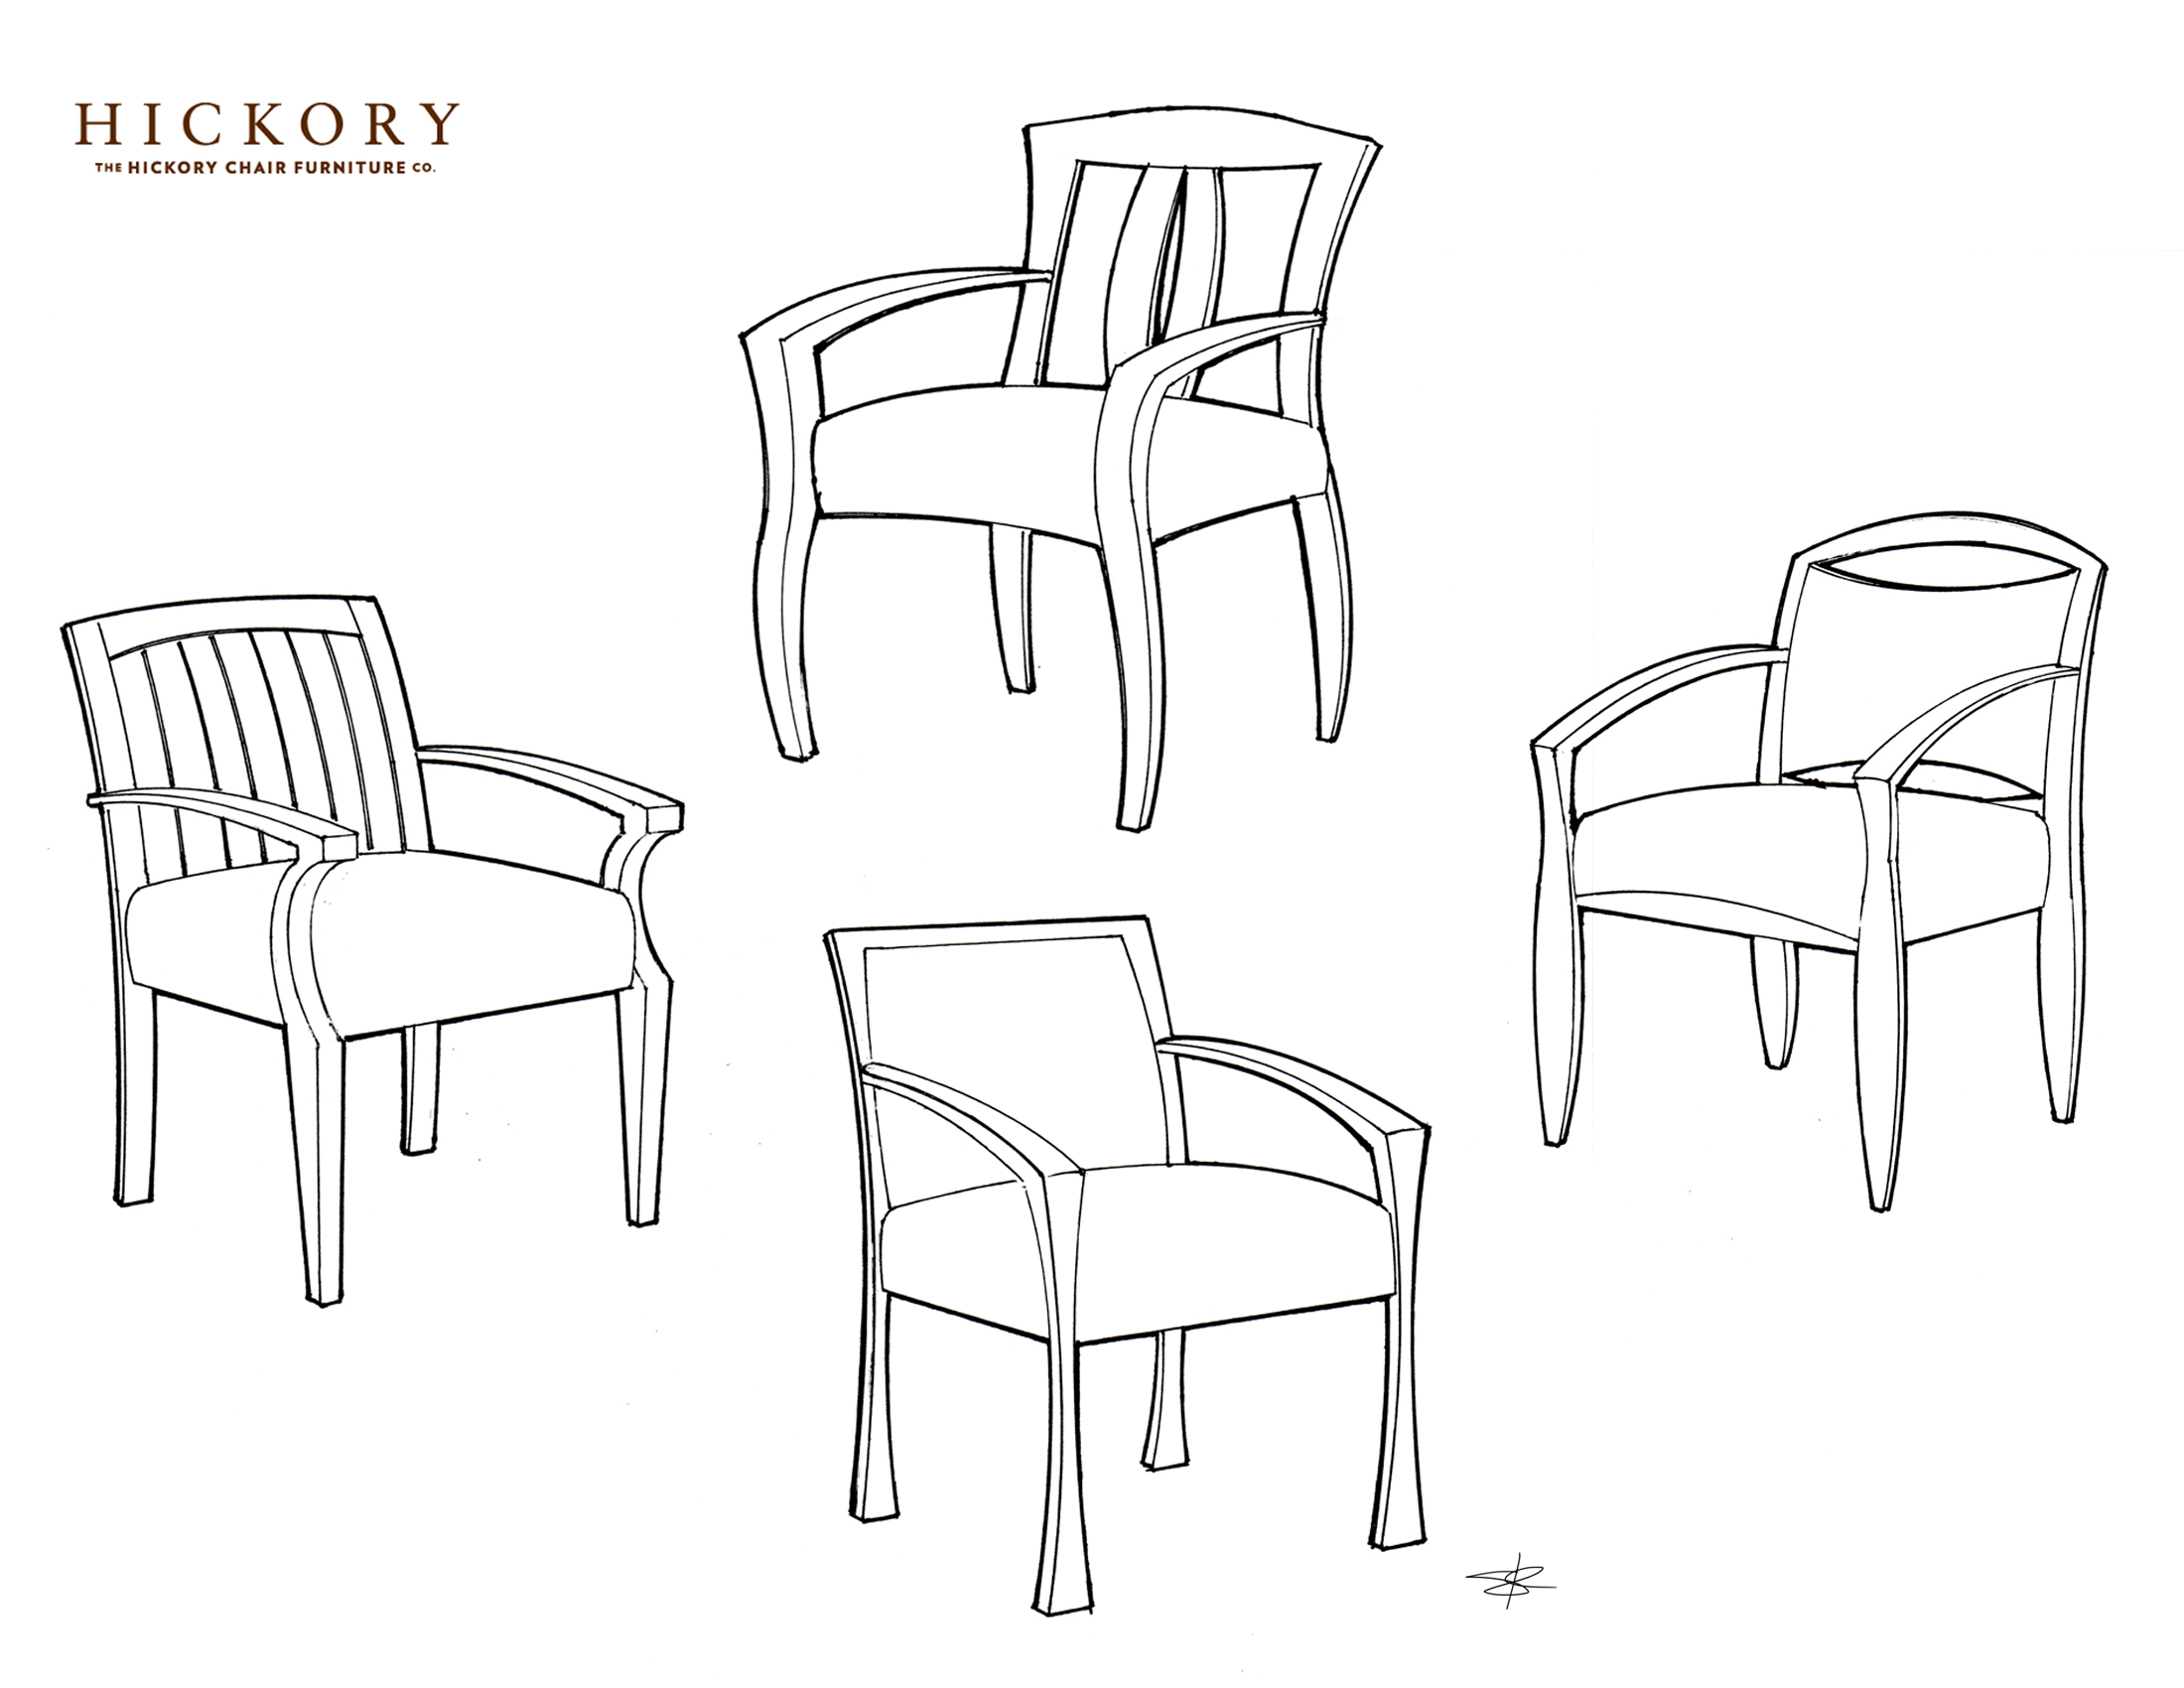 Contract & Hospitality Seating by Steven Krause at